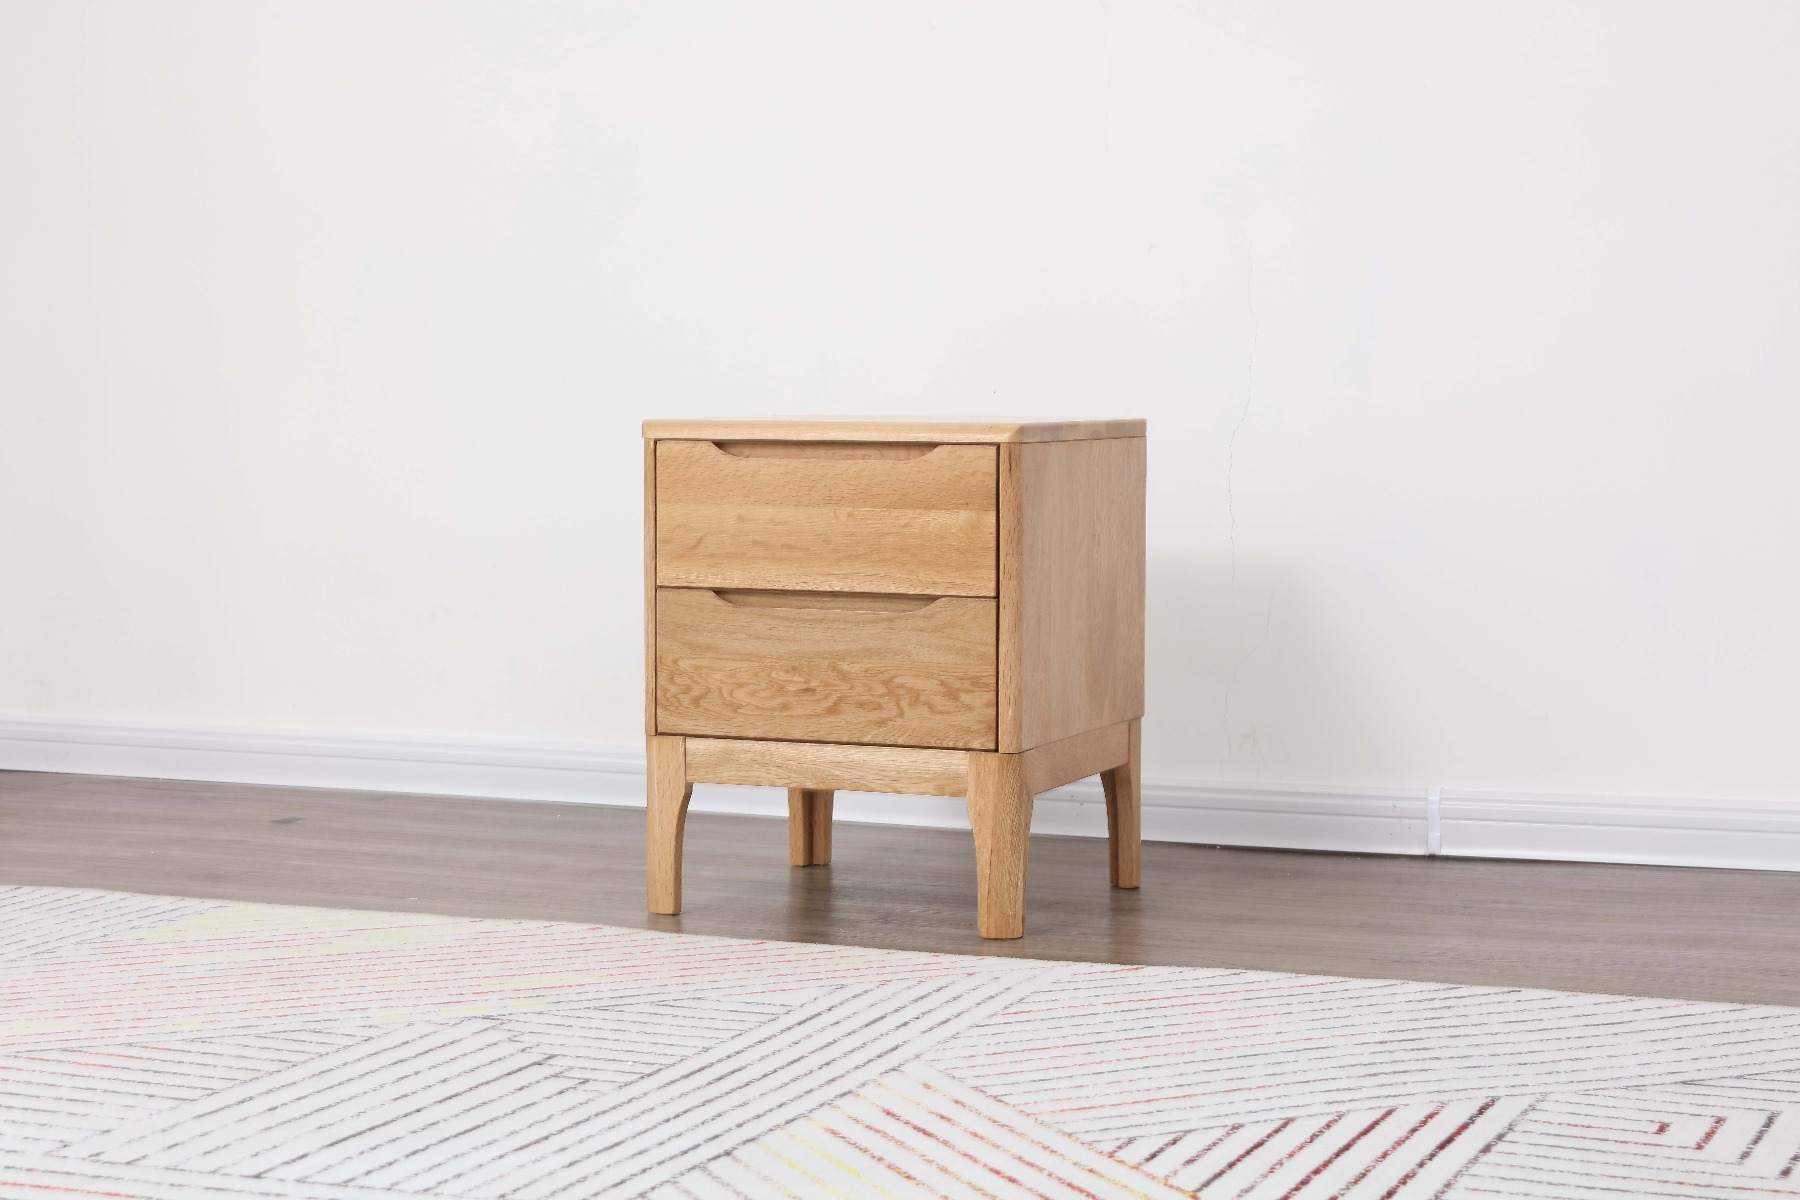 The Nara Side Table is designed to be clean, light and natural. Perfect for minimalists.